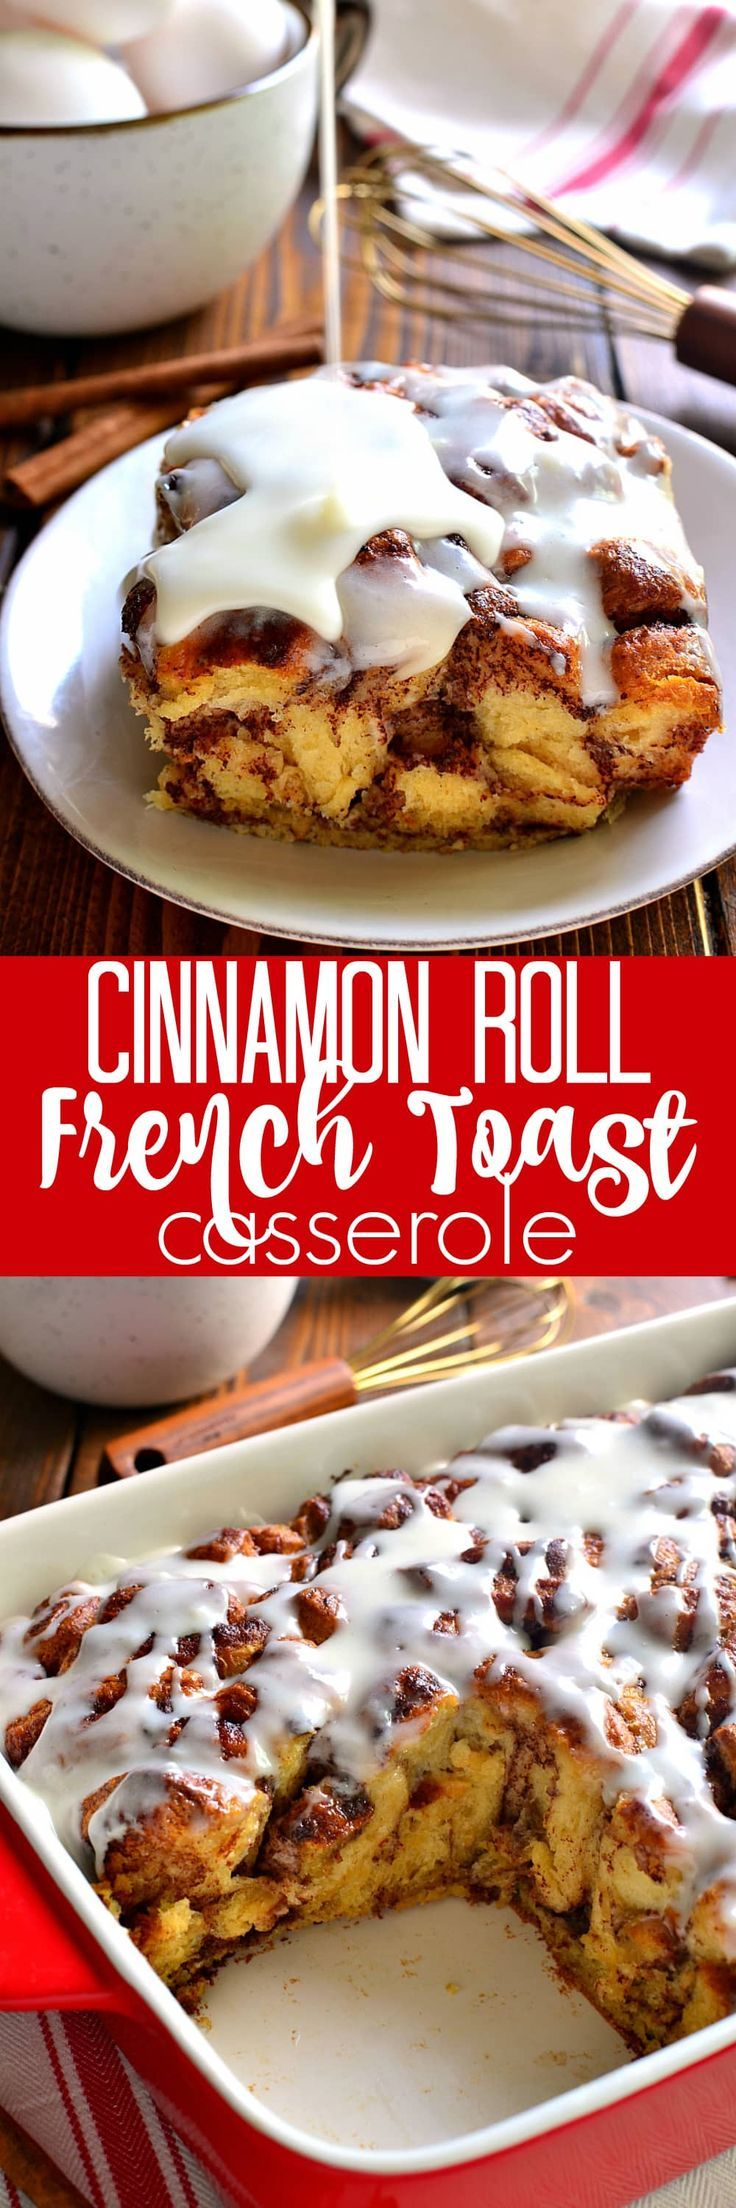 Cinnamon Roll French Toast Casserole takes cinnamon rolls to the next level in an ooey, gooey, delicious bake that's perfect for the holidays! (Favorite Cake Cinnamon Rolls)